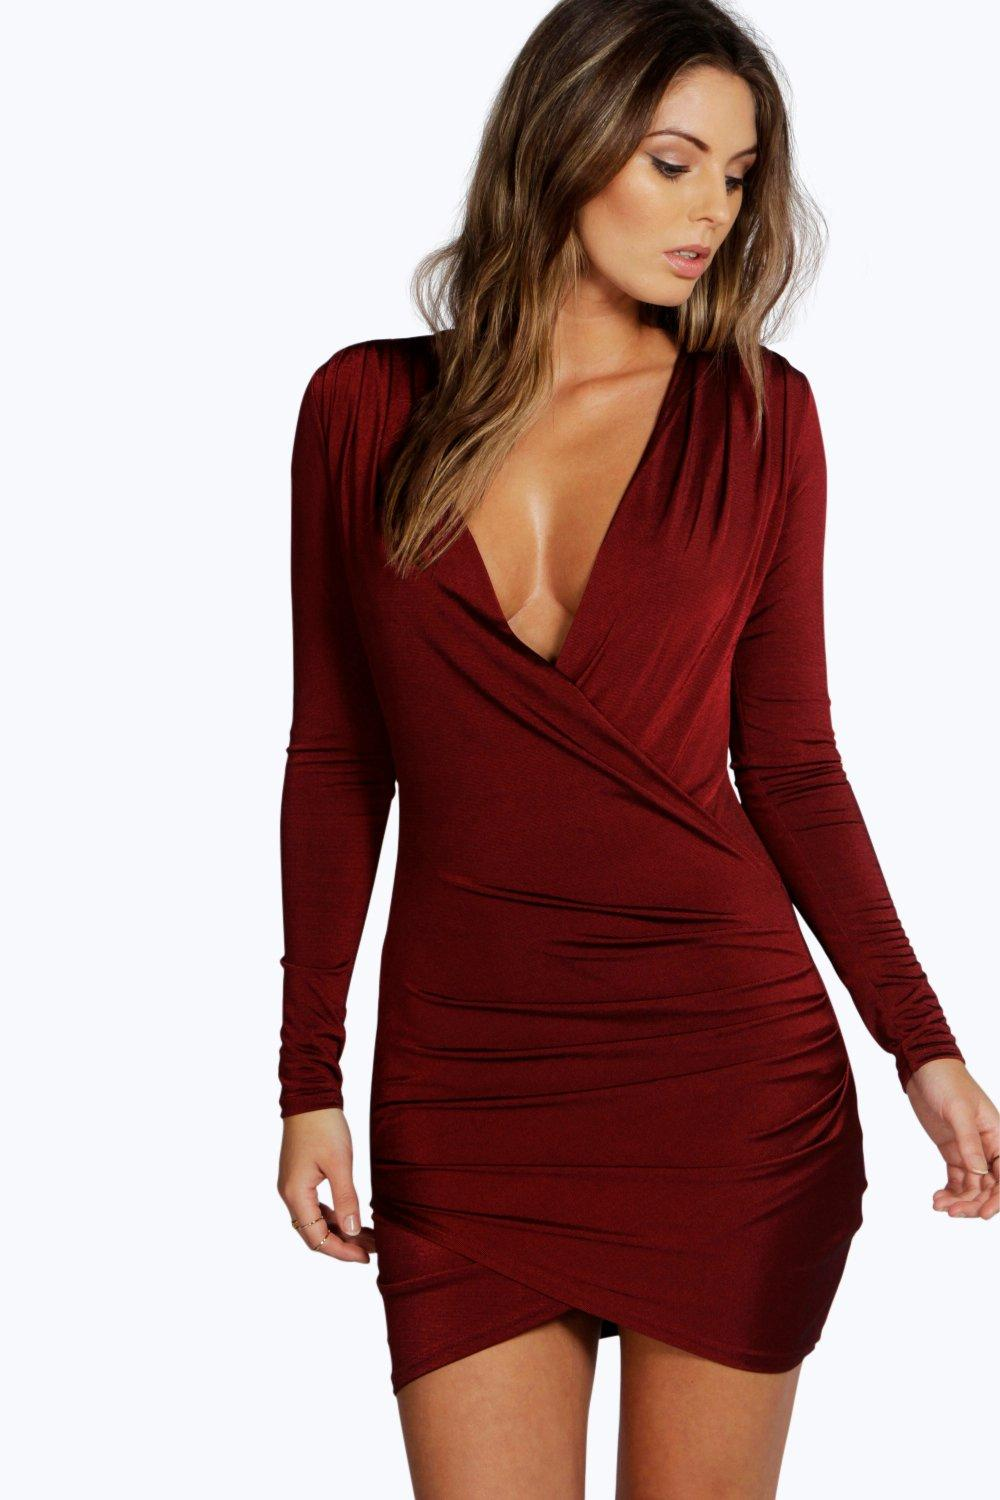 Womens Dress Boohoo High Quality Online Cheap Sale 100% Authentic Clearance 2018 Outlet Collections 9A4Tbvz